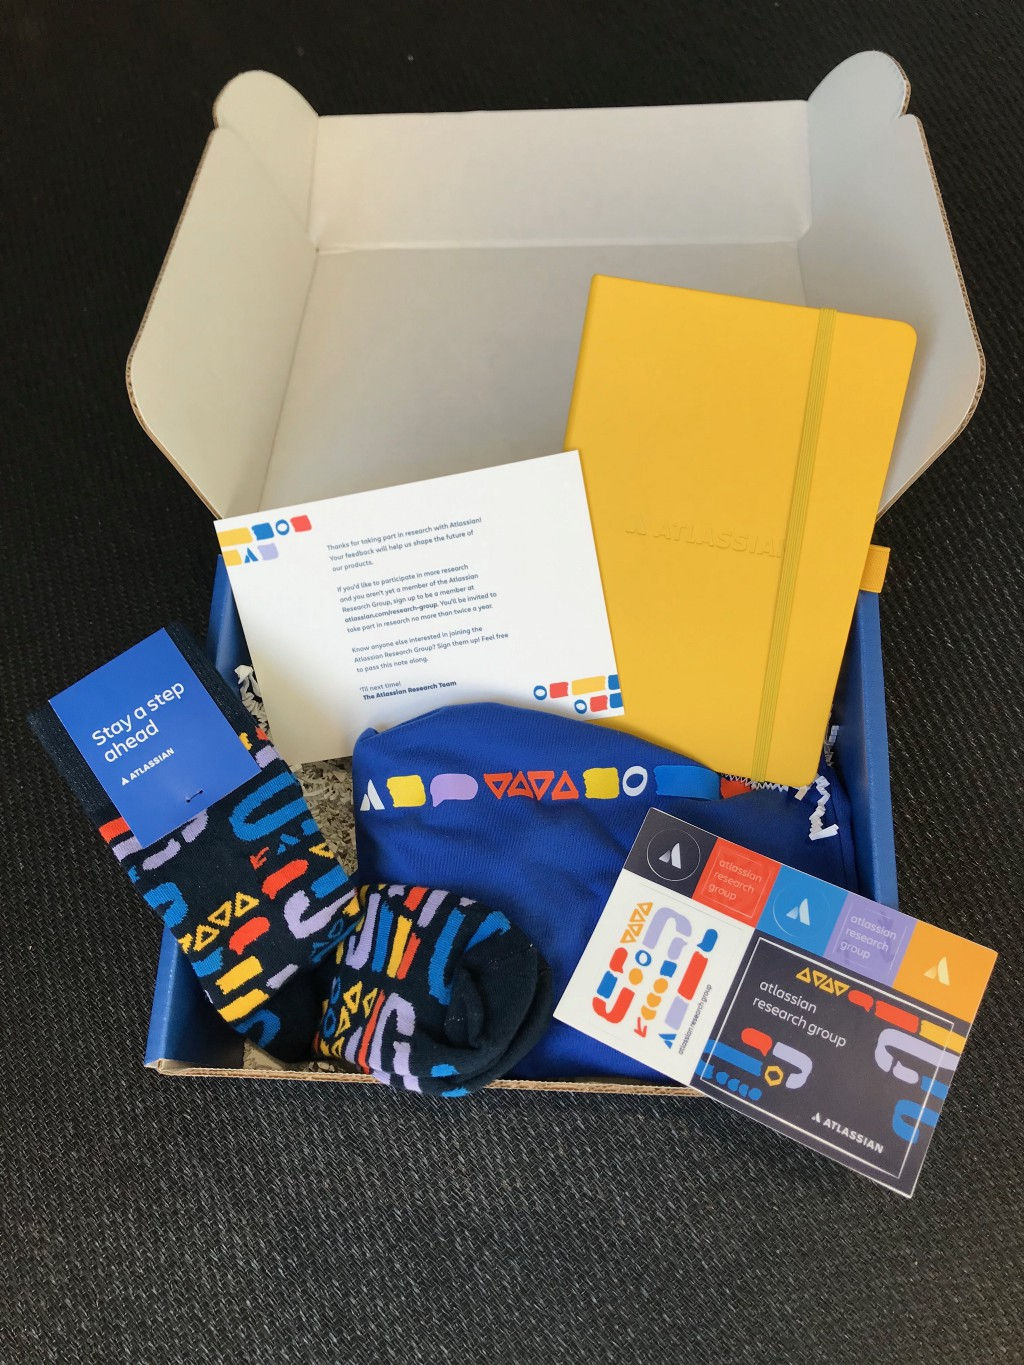 Box with branded, socks, t-shirt, stickers, and notebook